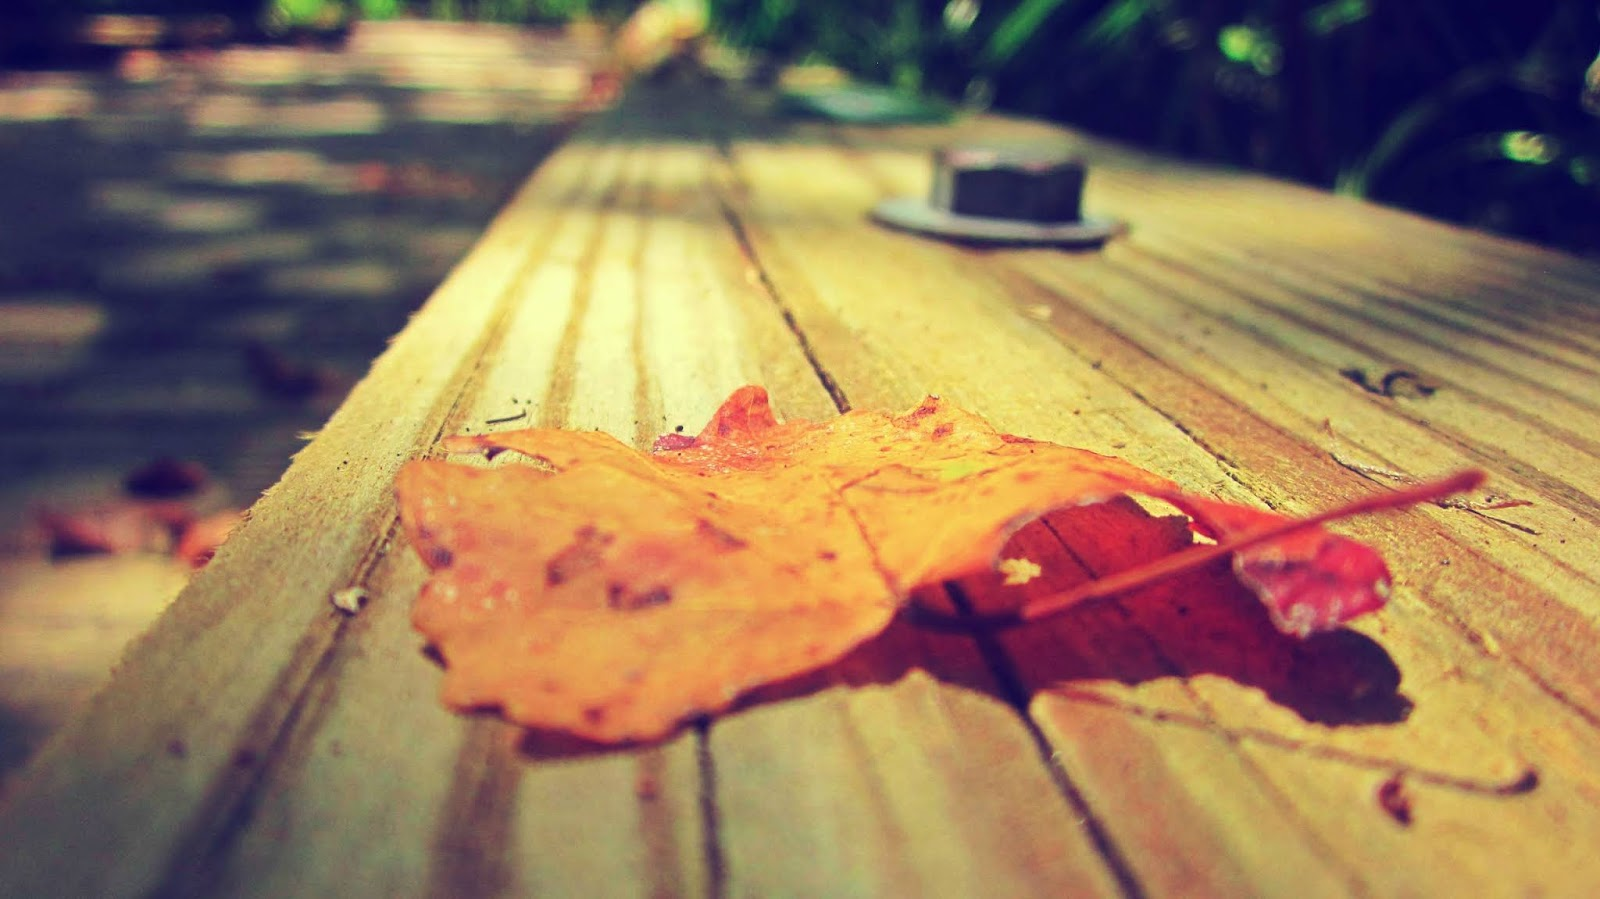 Crisp Orange Fall Leaf on a Wooden Walking Path in Nature in Boca Ciega Millennium Park in Seminole, Florida